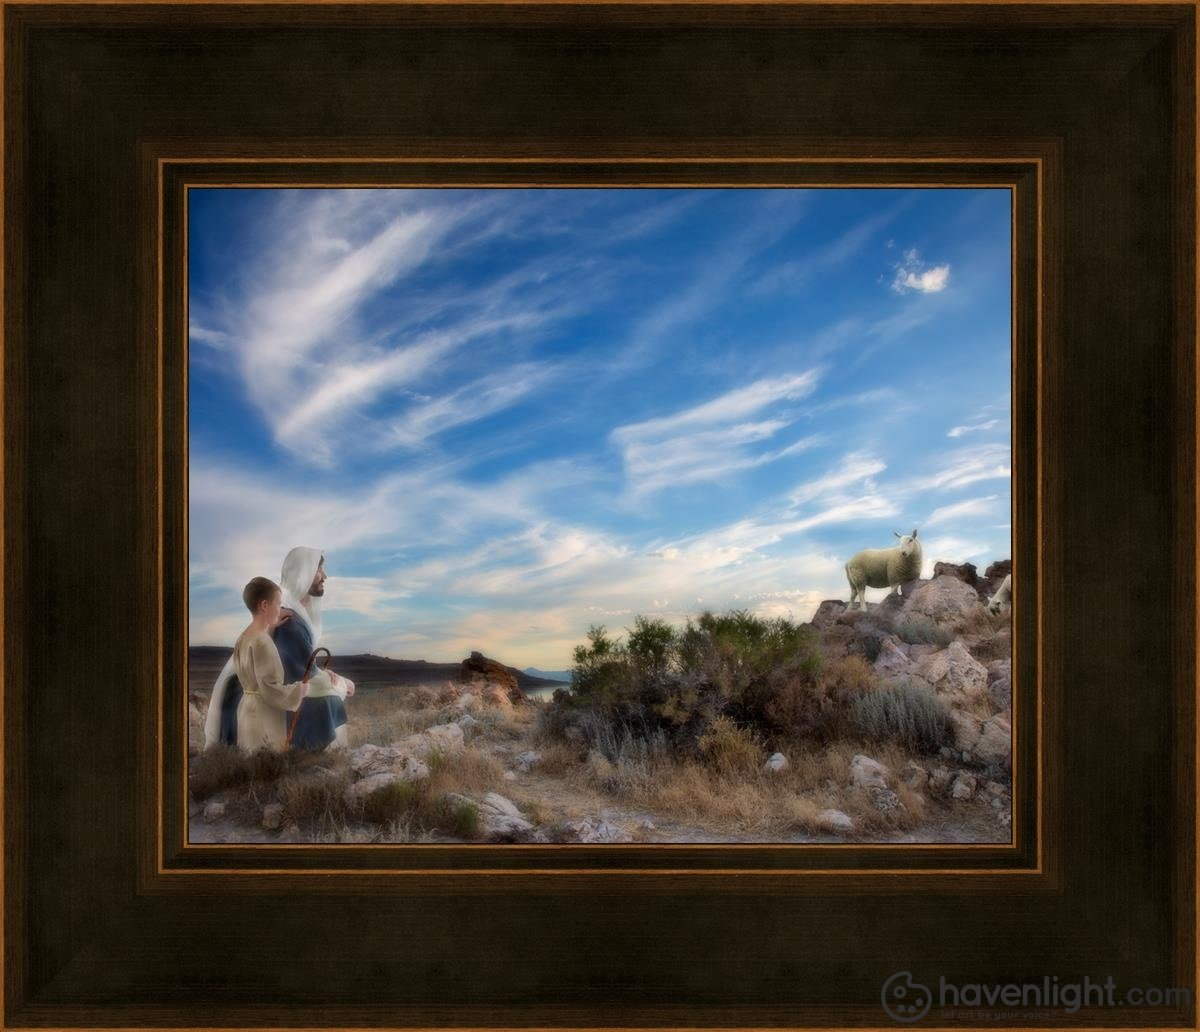 Training The Young Shepherd Open Edition Print / 10 X 8 Frame A 12 1/4 14 Art